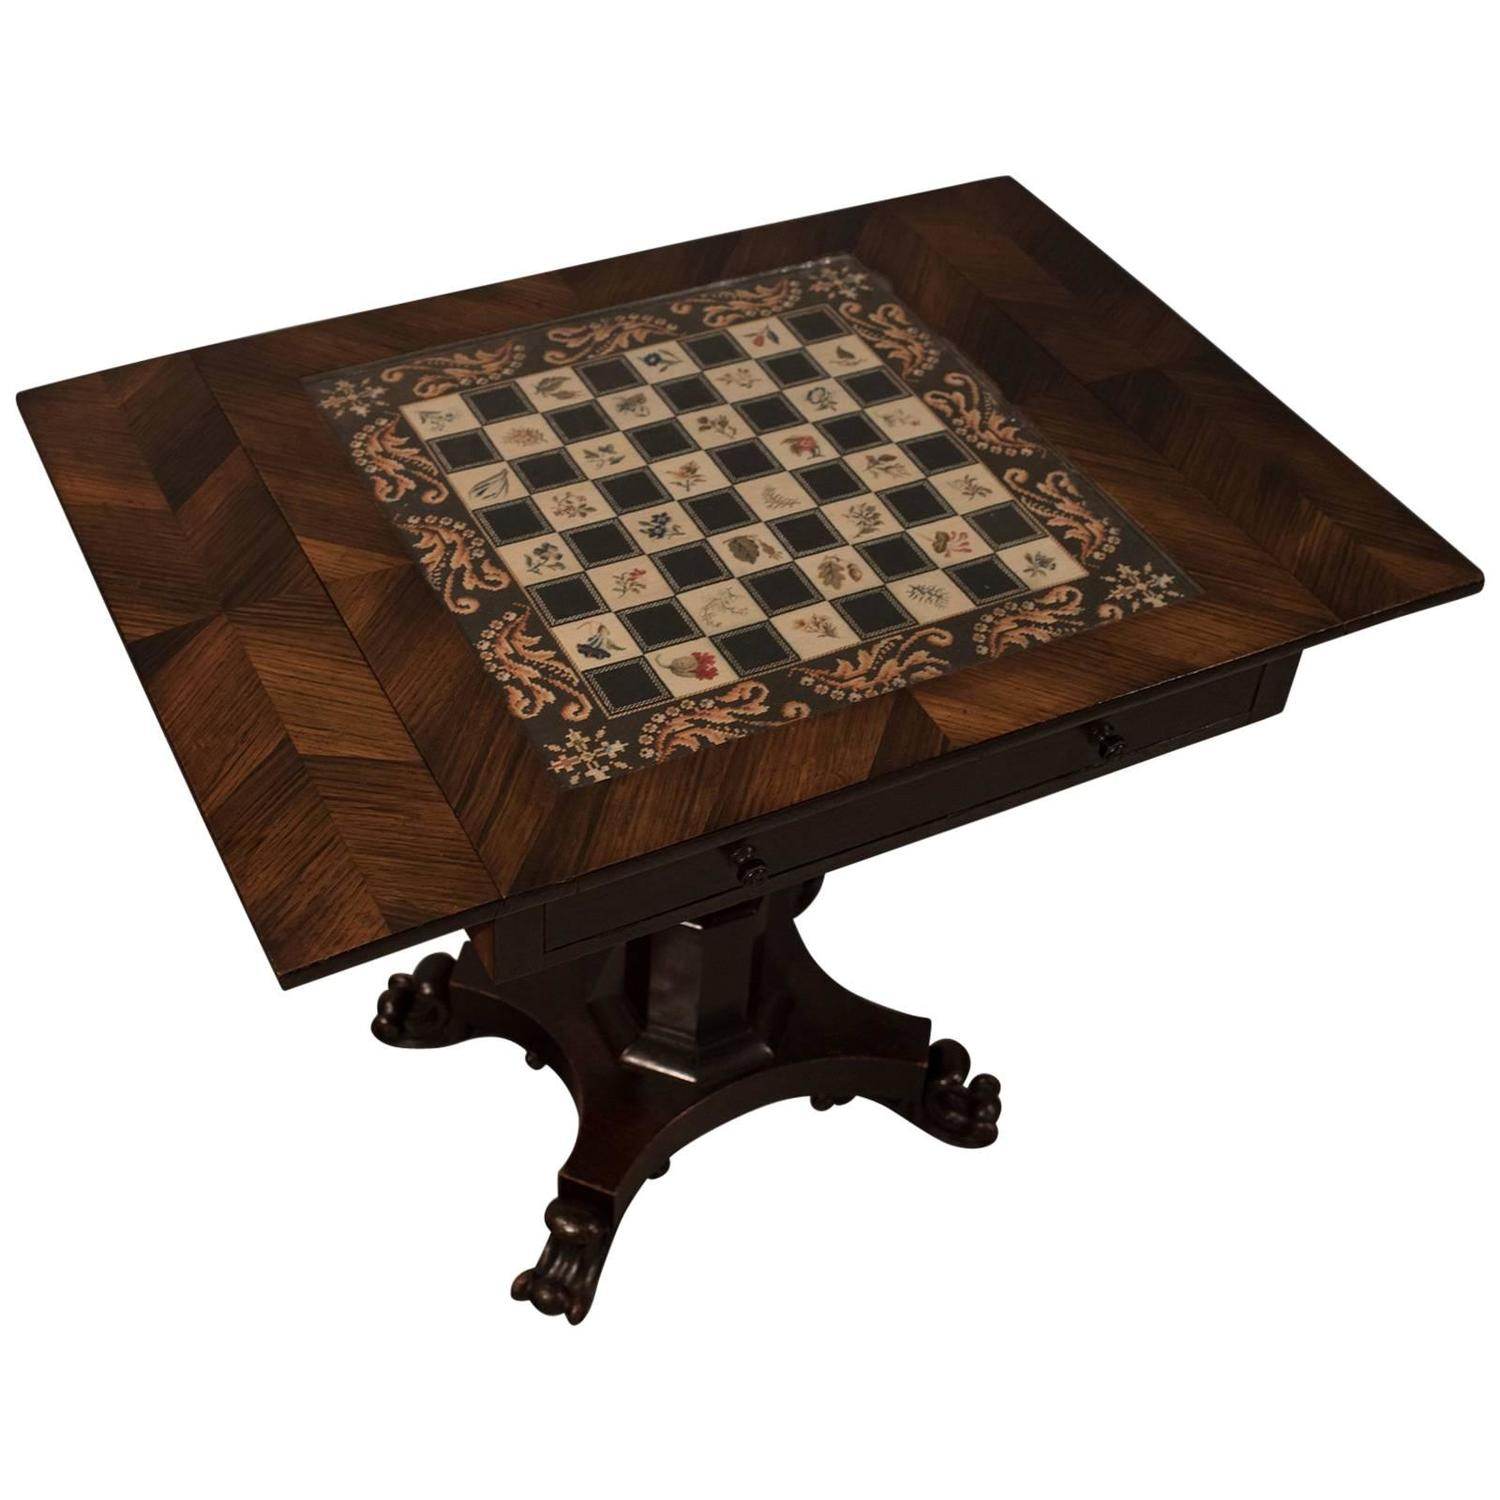 Antique Chess Board Games Table Quality English Regency in